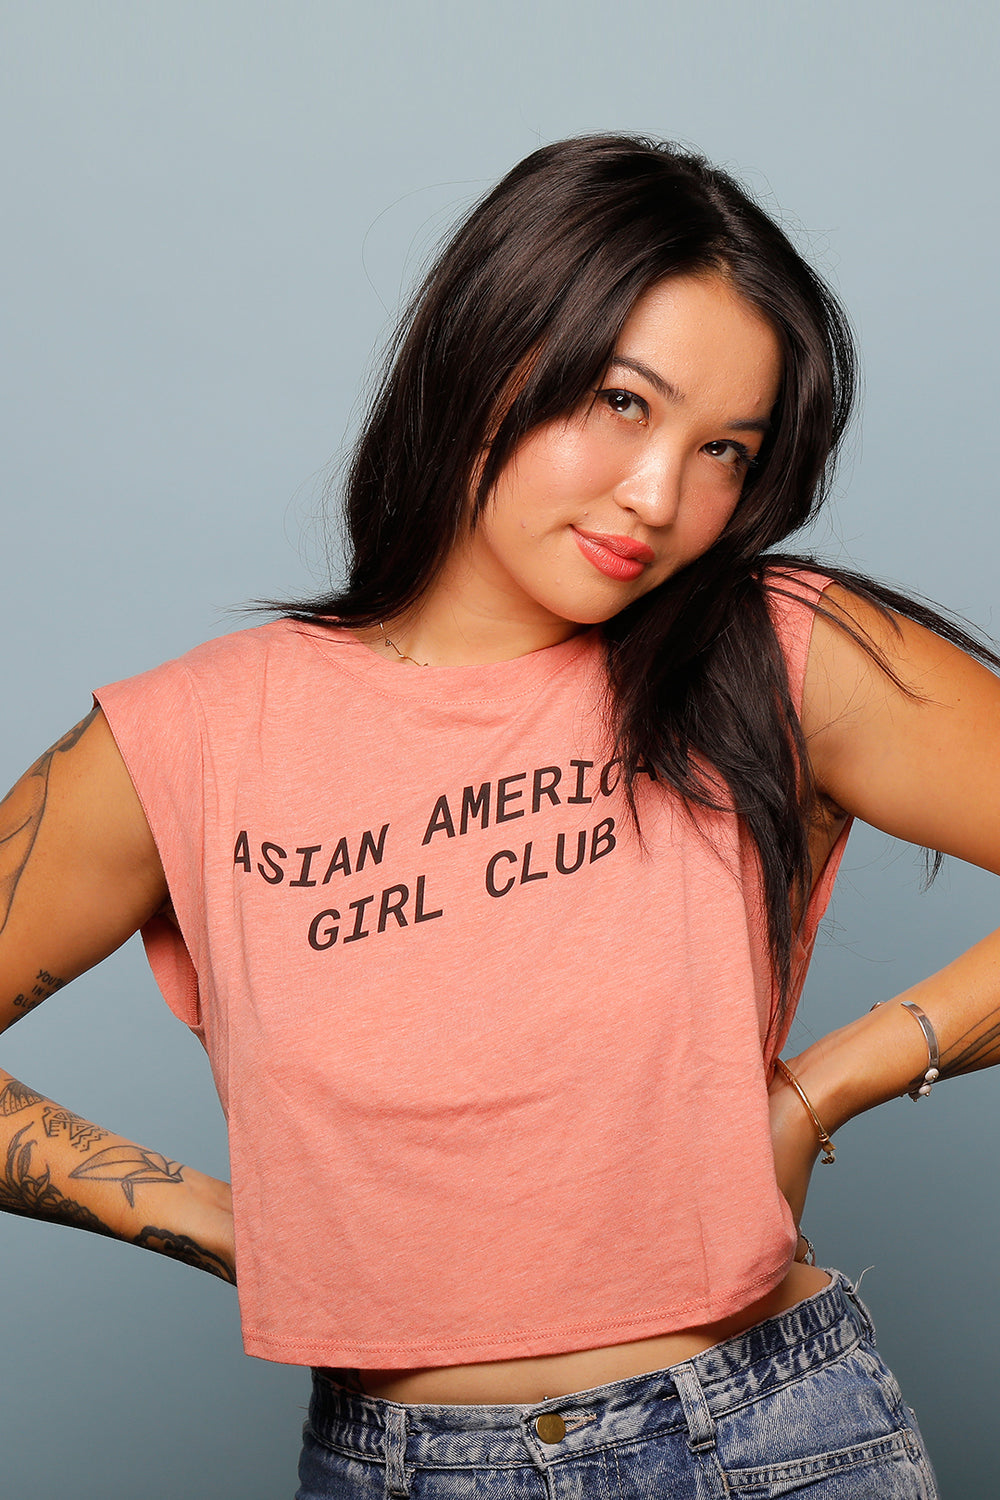 ASIAN AMERICAN GIRLS CLUB CROPPED TANK